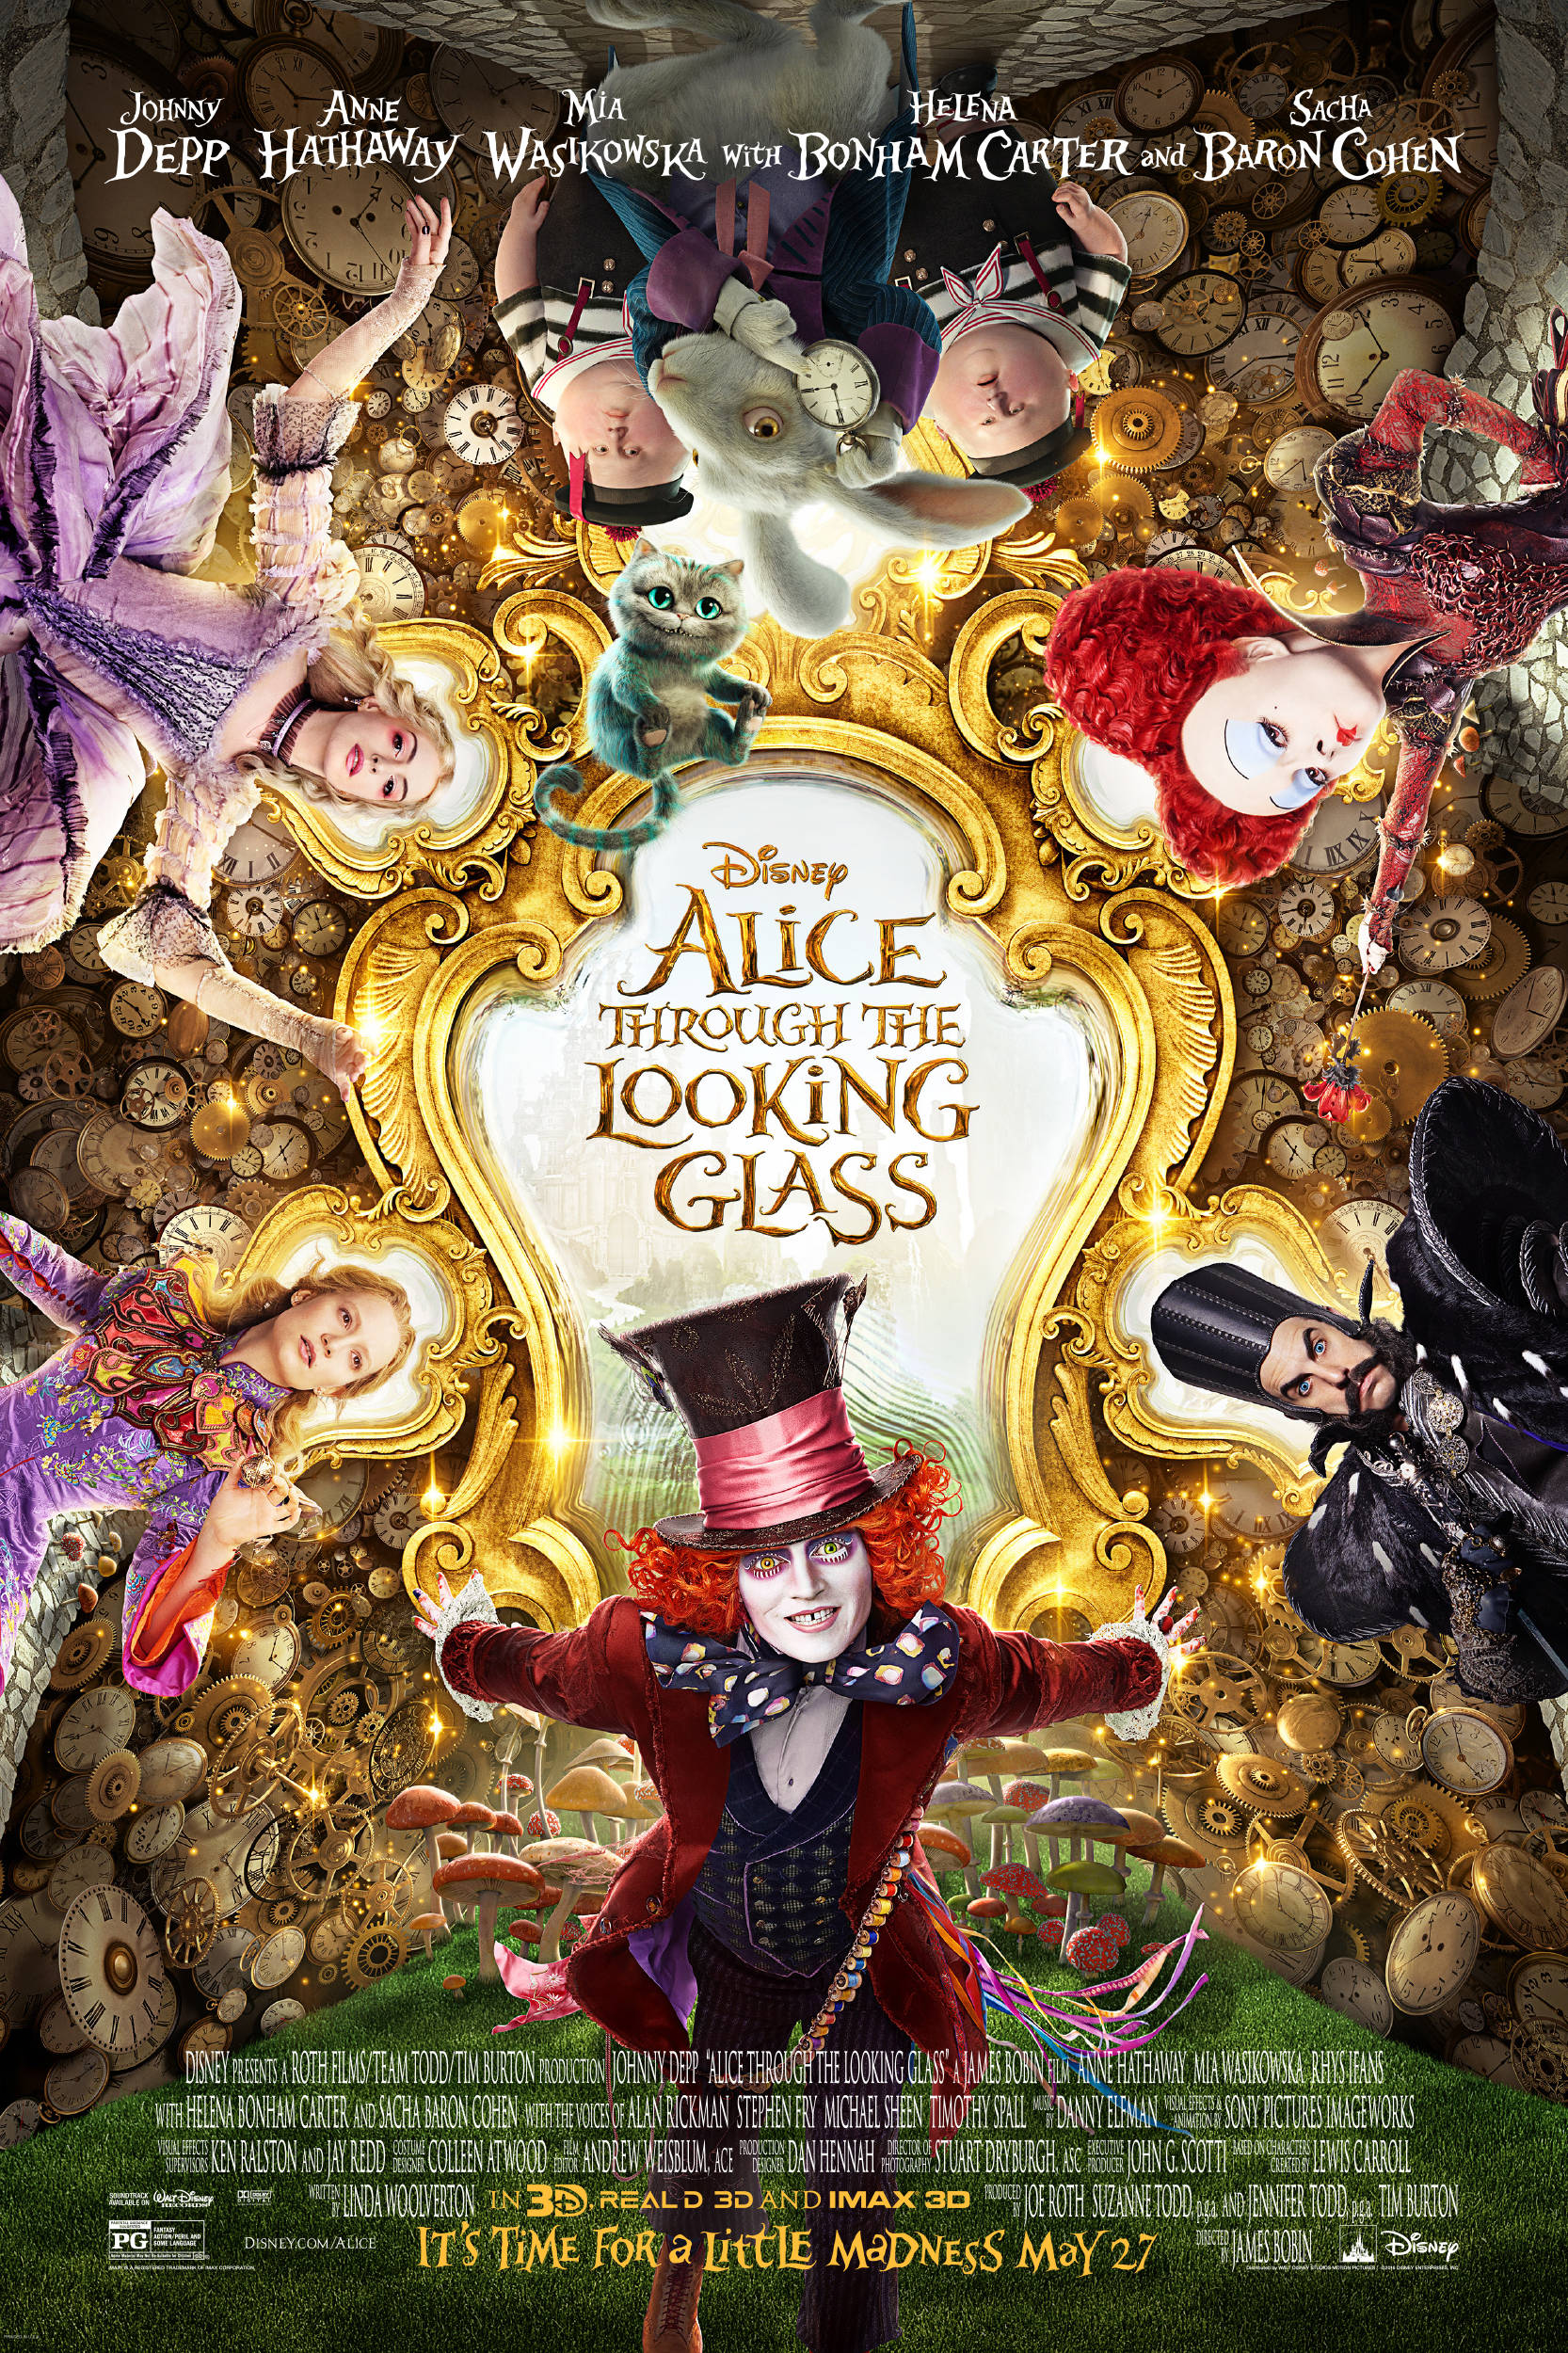 Through The Looking Glass Quotes Alice Through The Looking Glass  Disney Wiki  Fandom Powered.